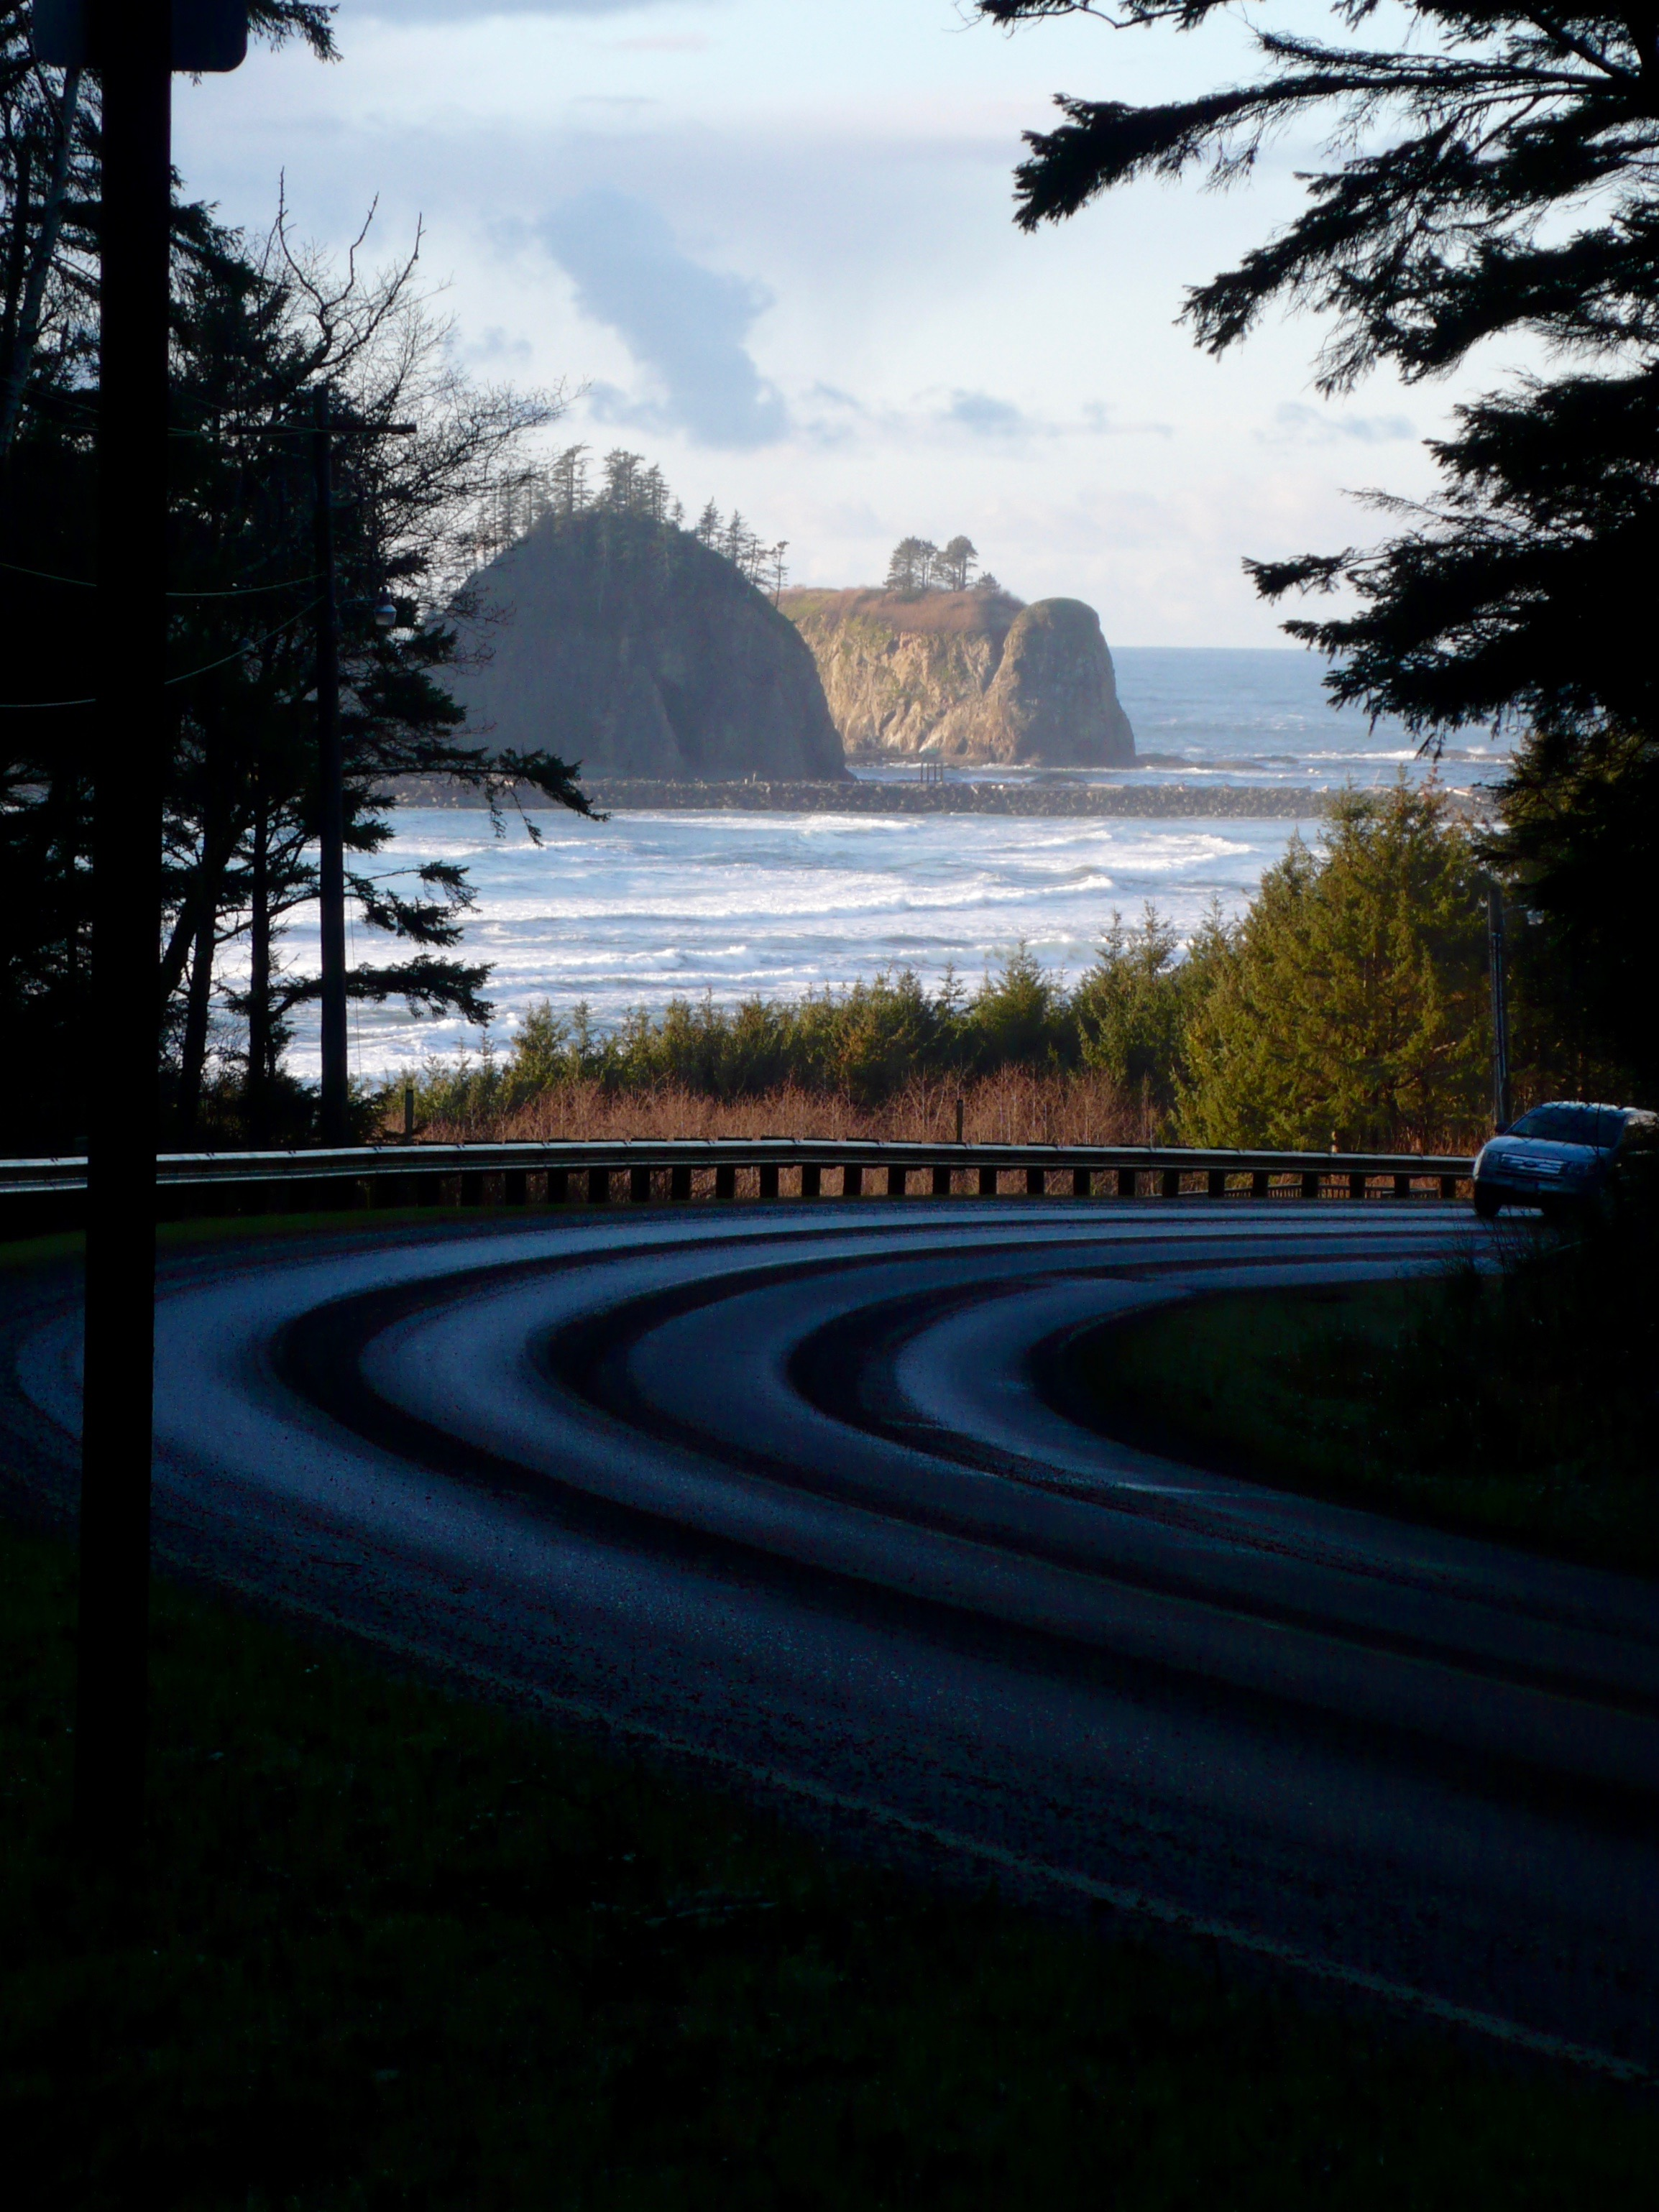 The road leading to La Push